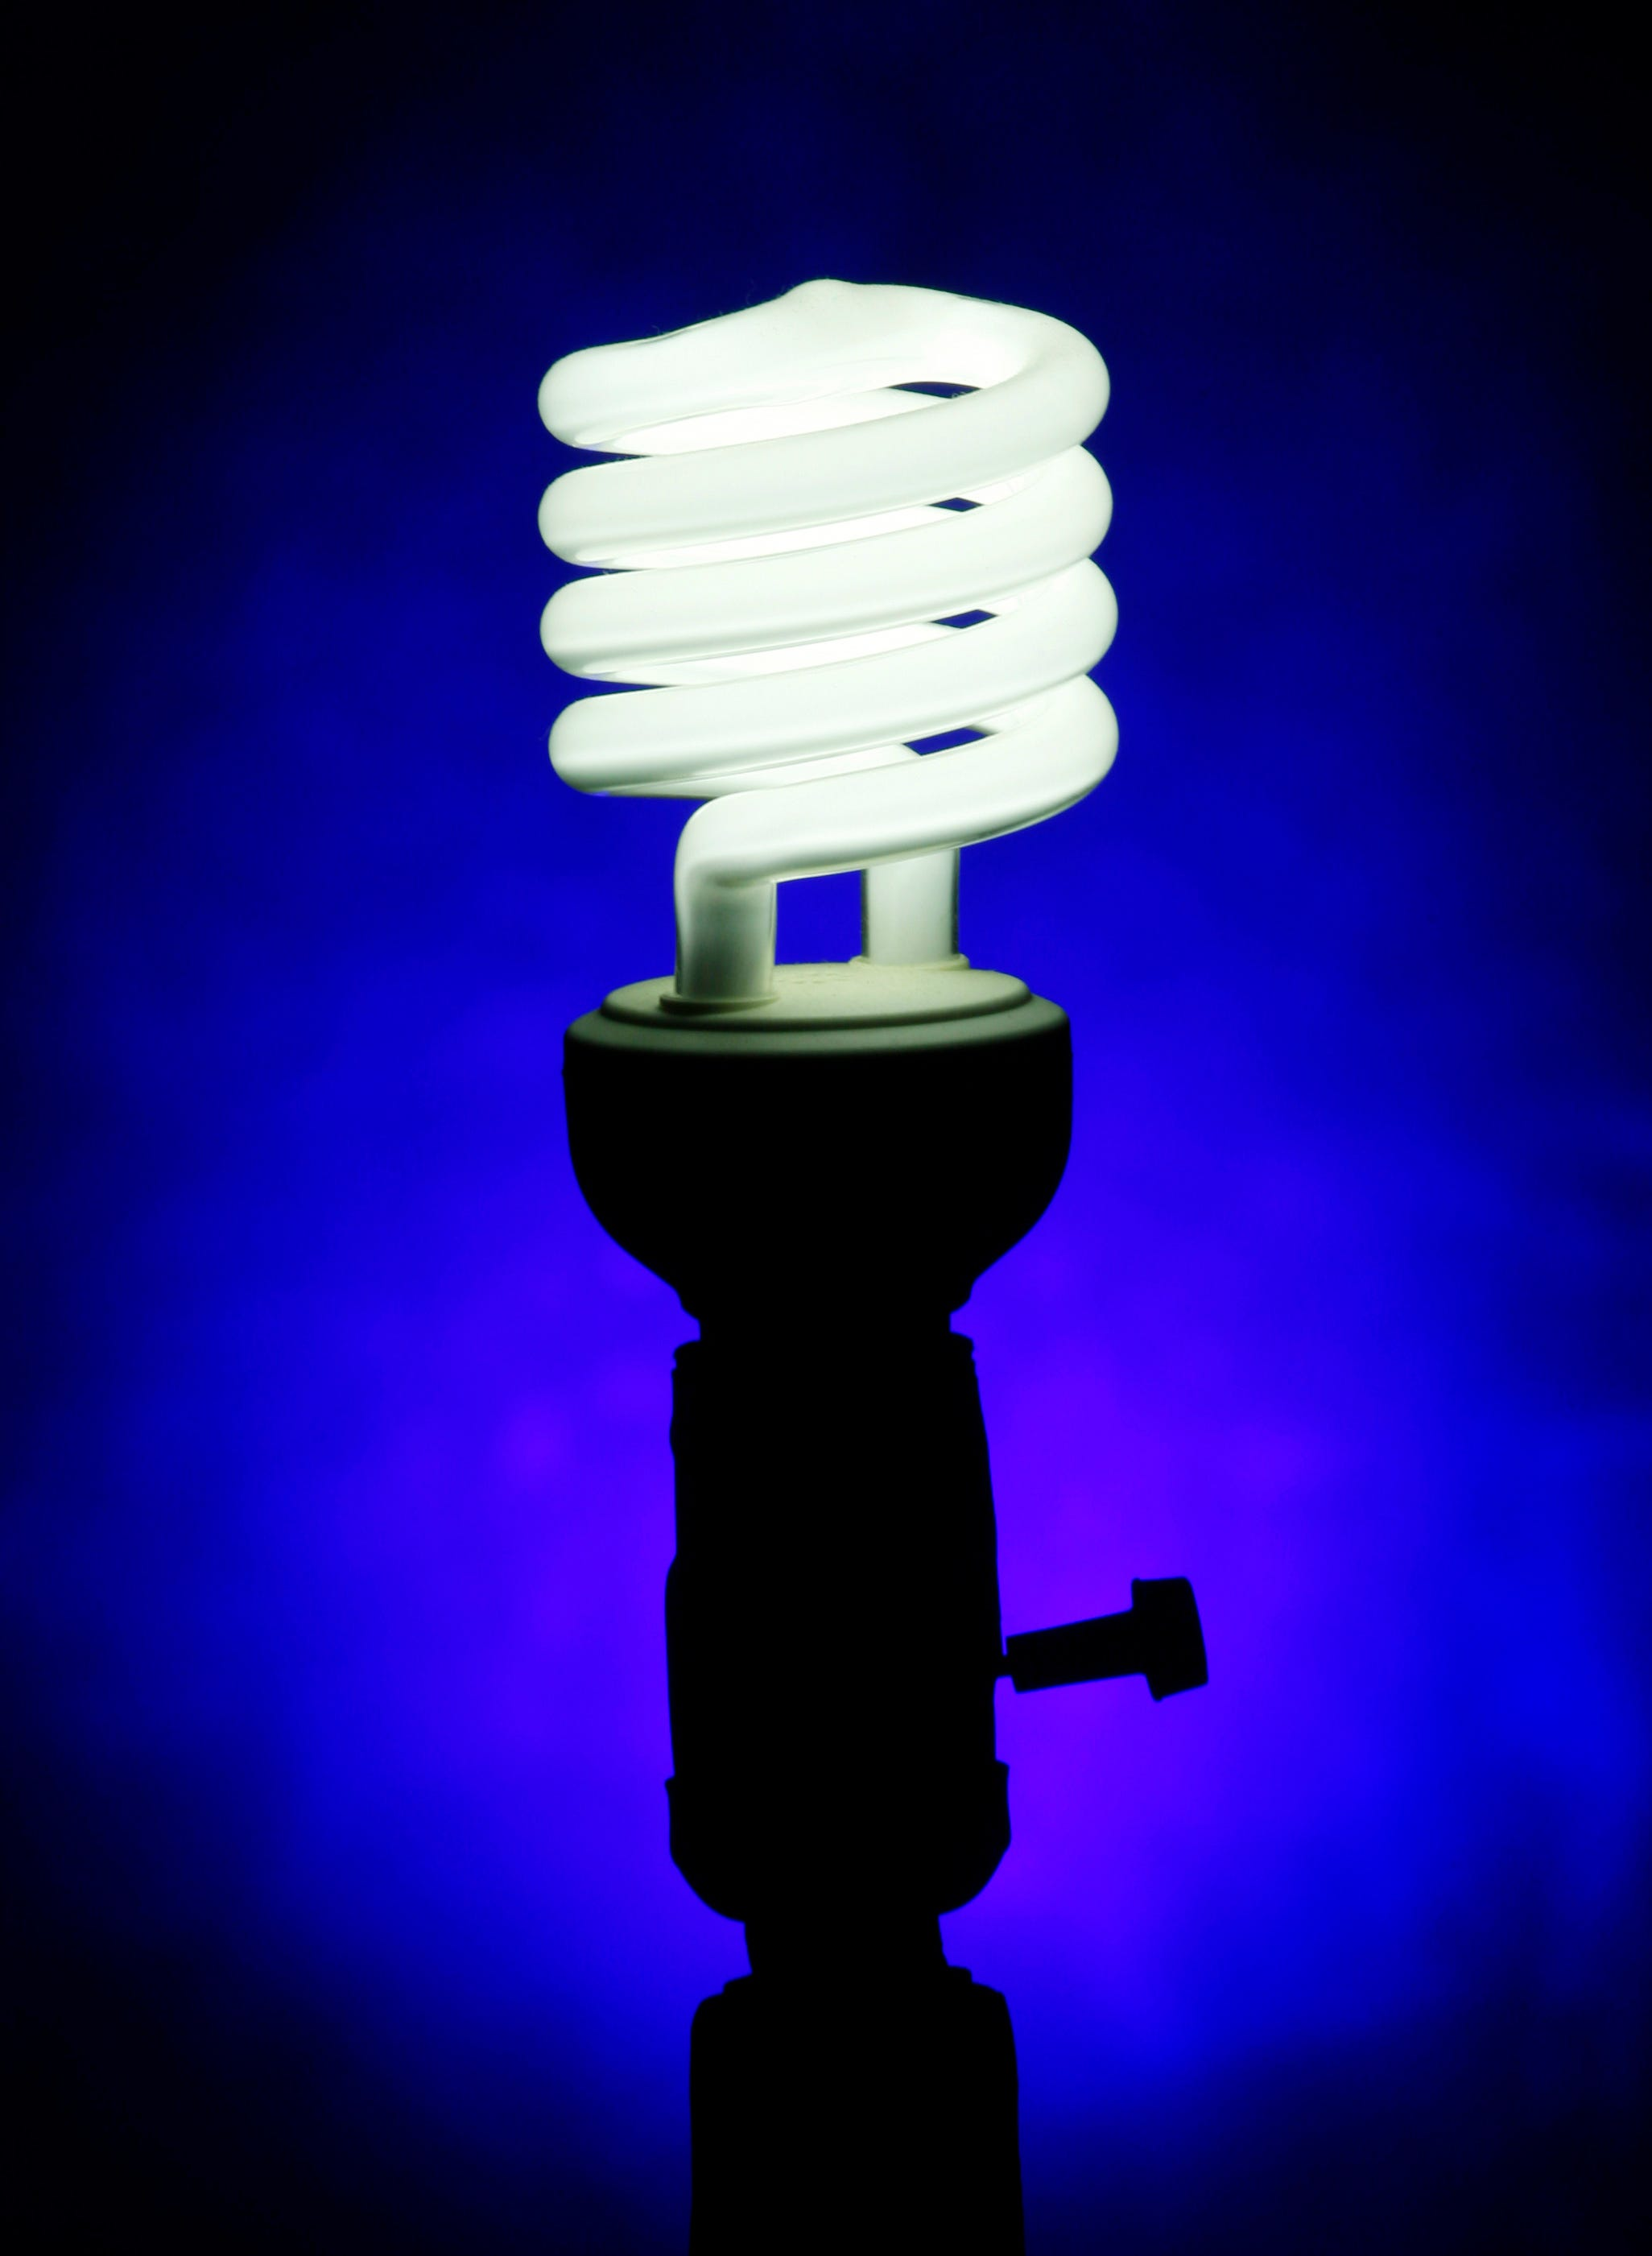 Lose the incandescent lights and unplug as many electronics as possible